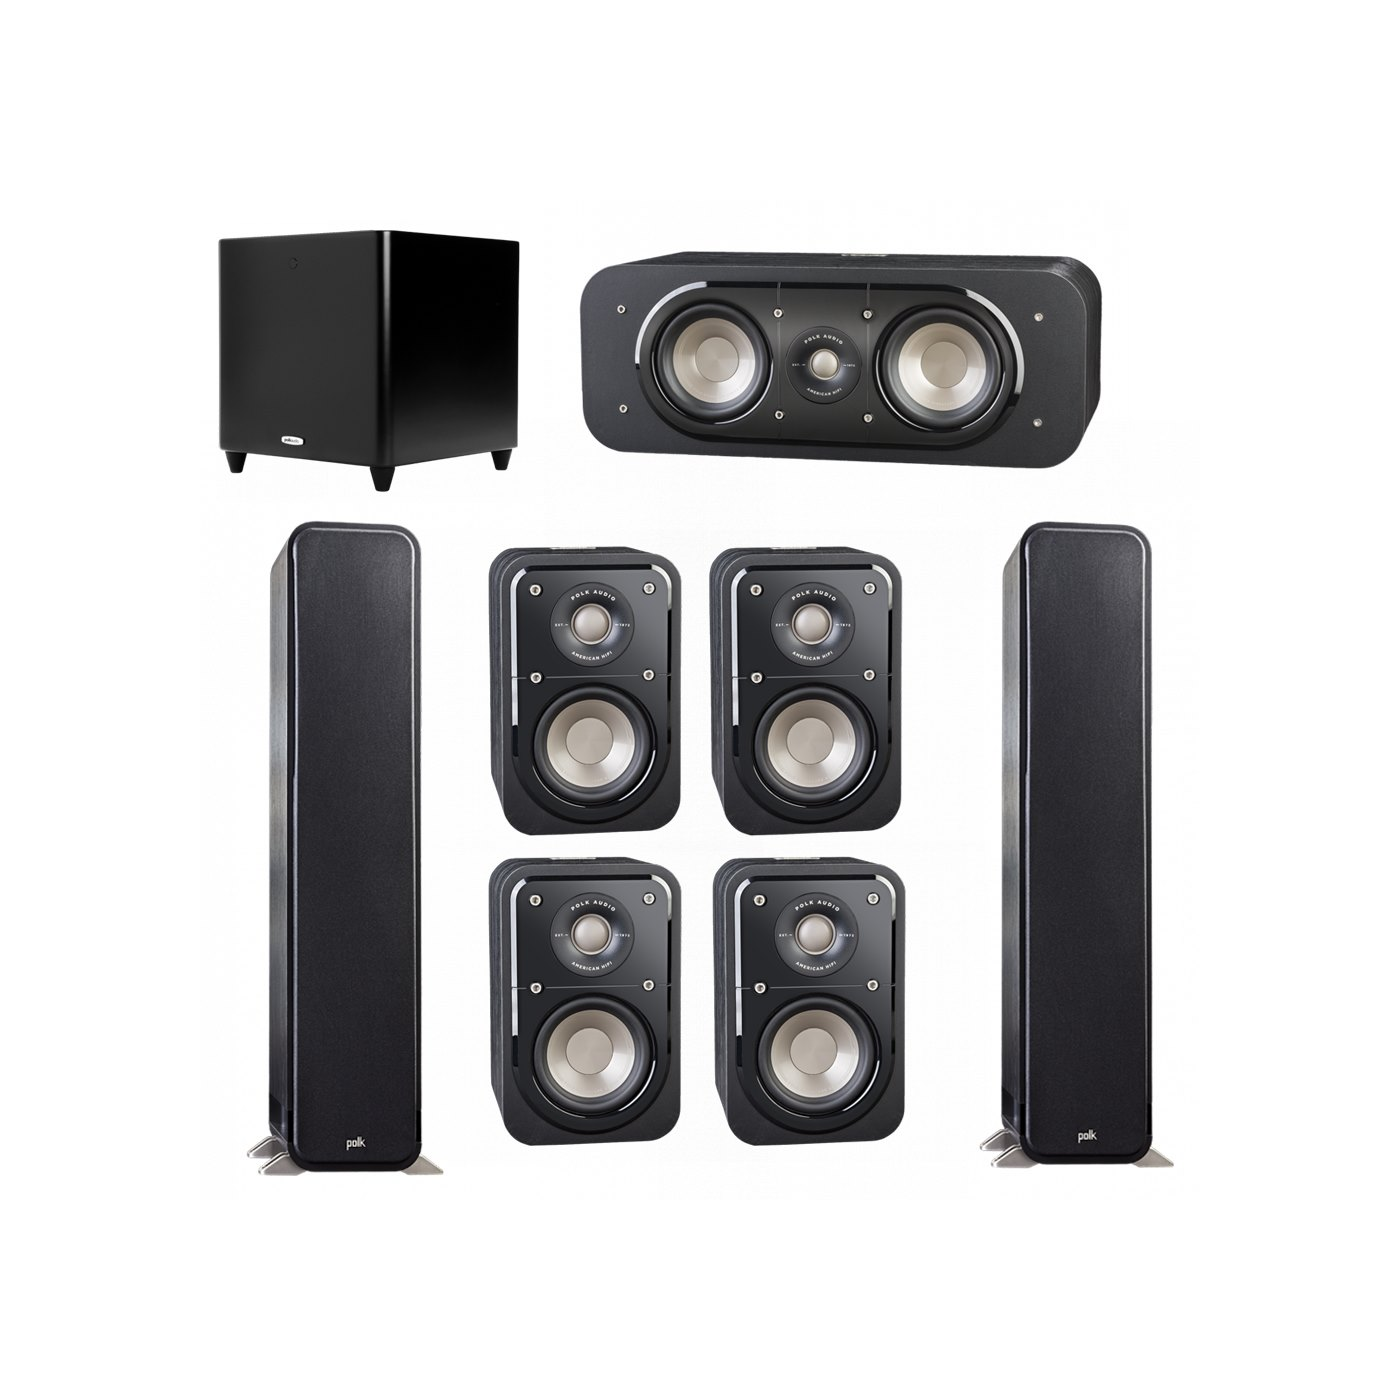 Polk Audio Signature 7.1 System with 2 S55 Tower Speaker, 1 Polk S30 Center Speaker, 4 Polk S10 Bookshelf Speaker, 1 Polk DSW PRO 660 wi Subwoofer